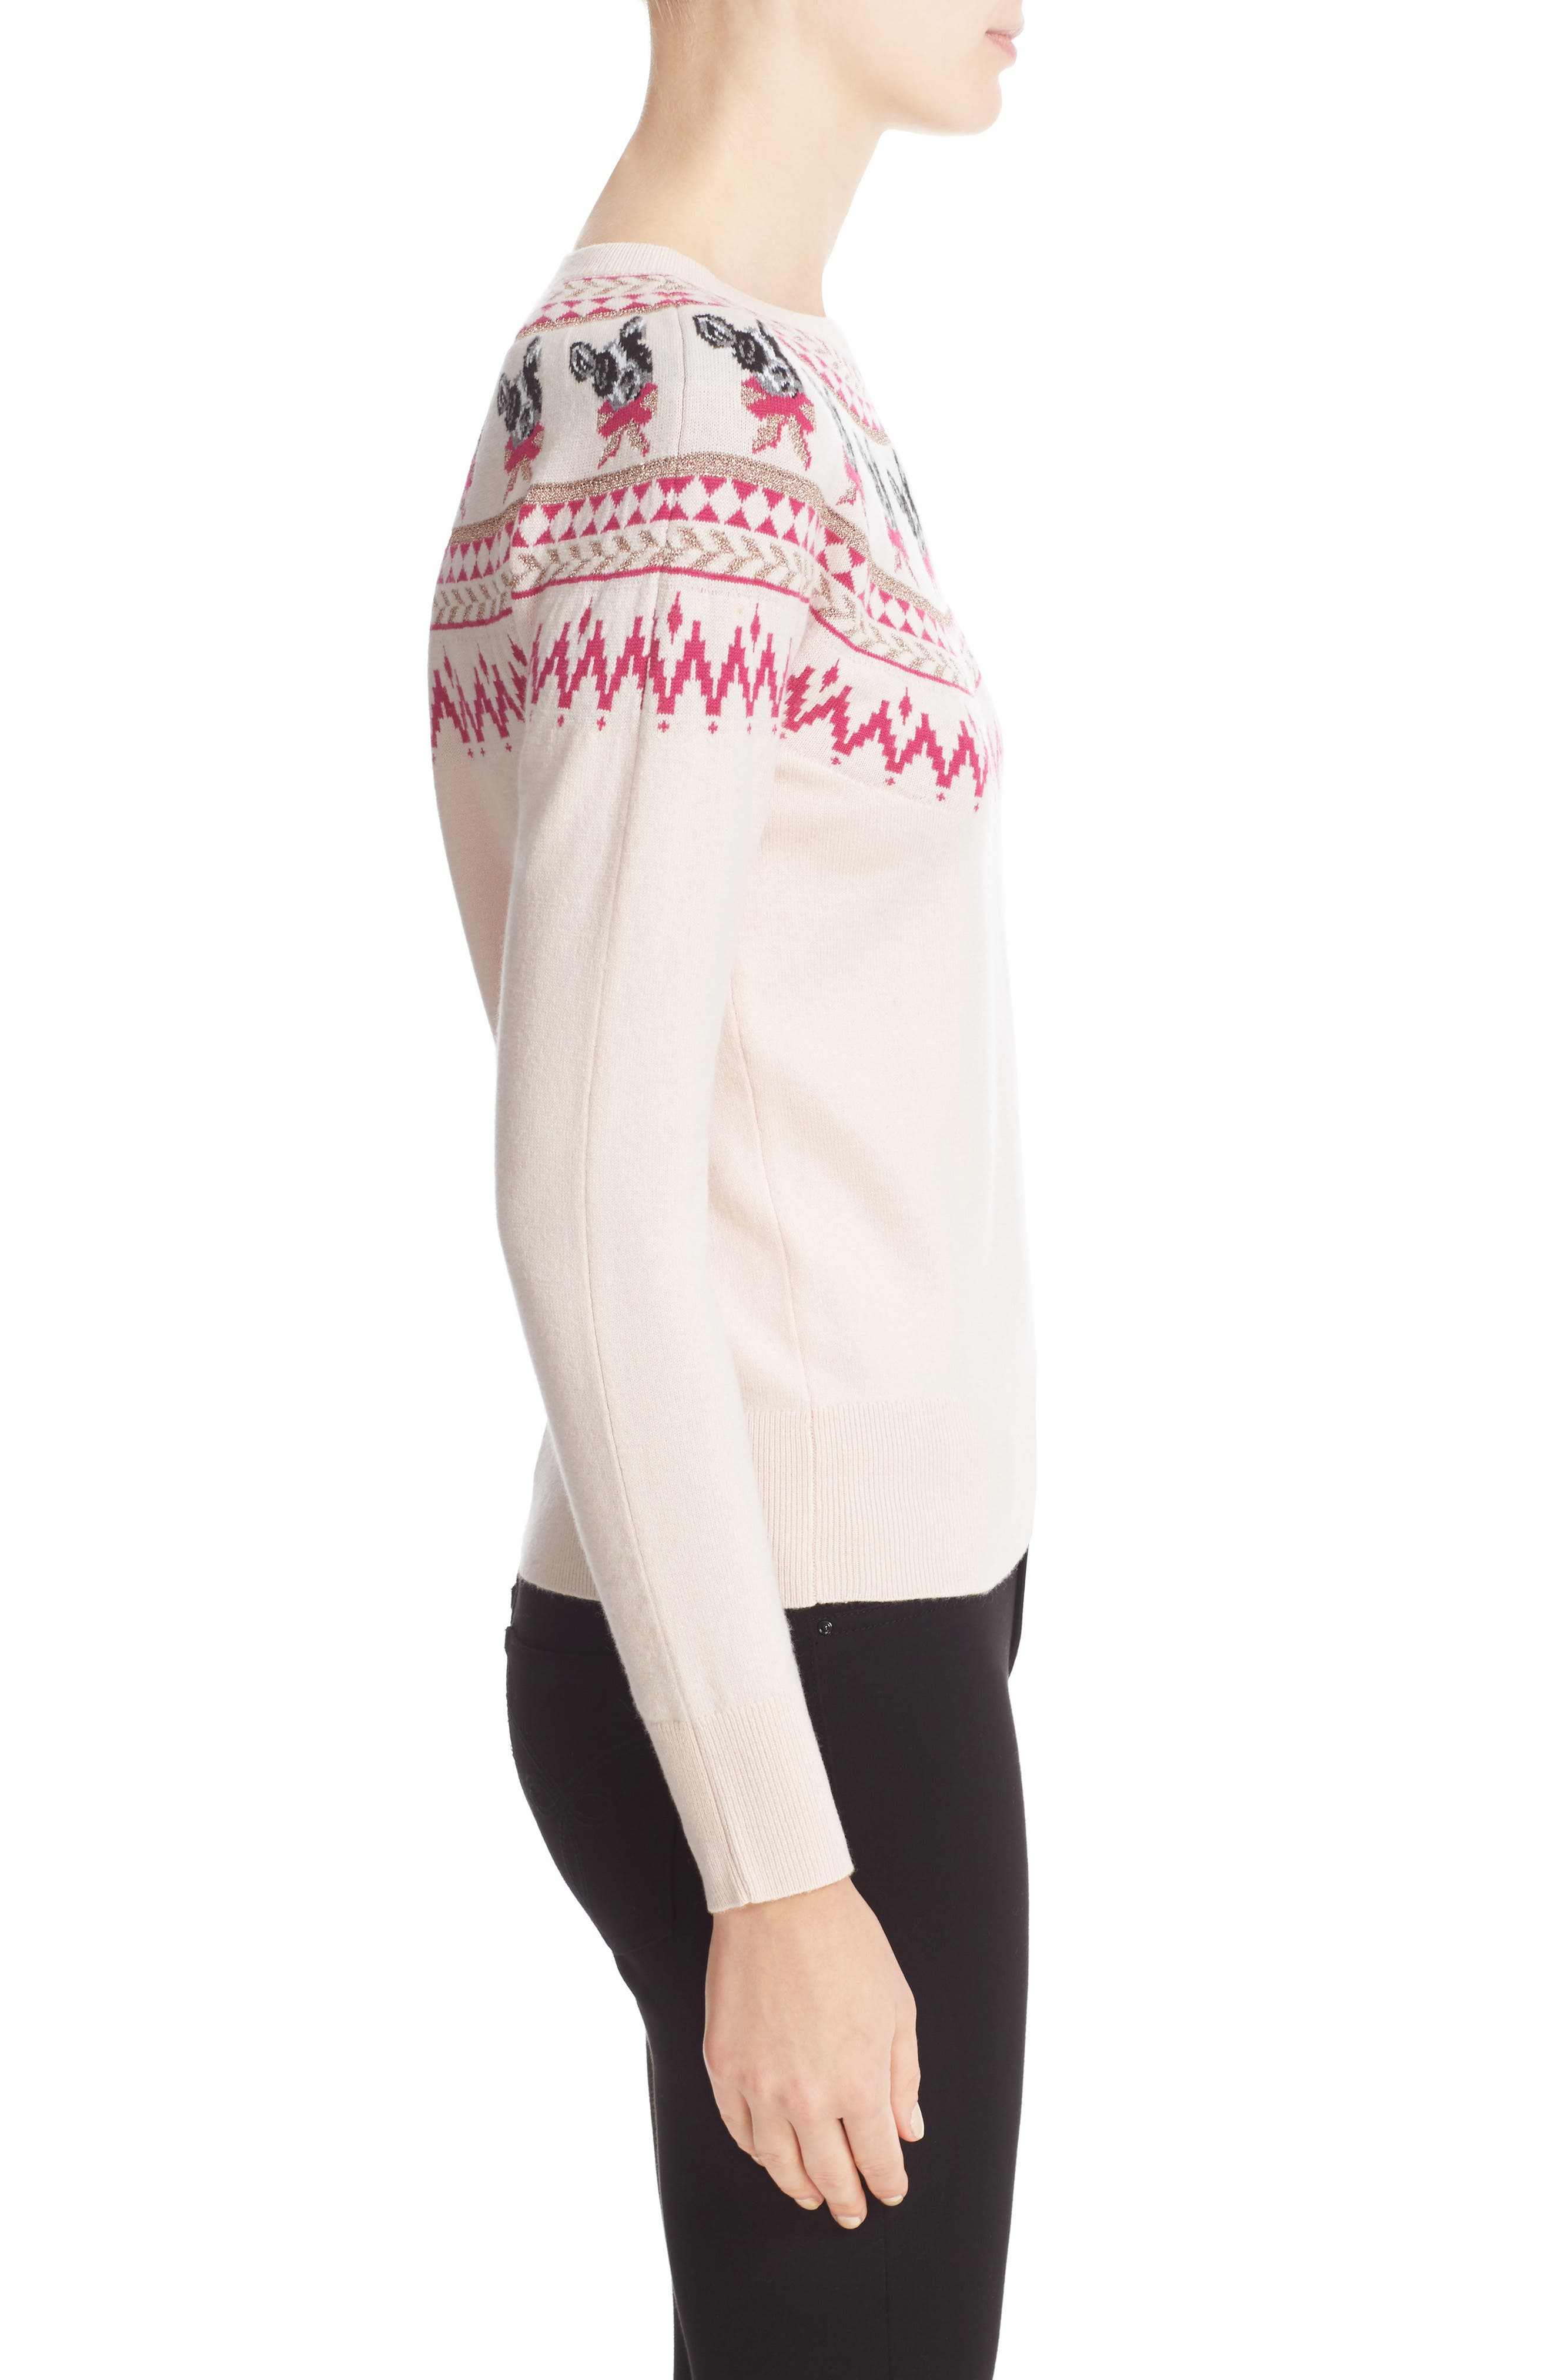 TED BAKER LONDON,                             Merry Woofmas Fair Isle Pullover,                             Alternate thumbnail 3, color,                             272